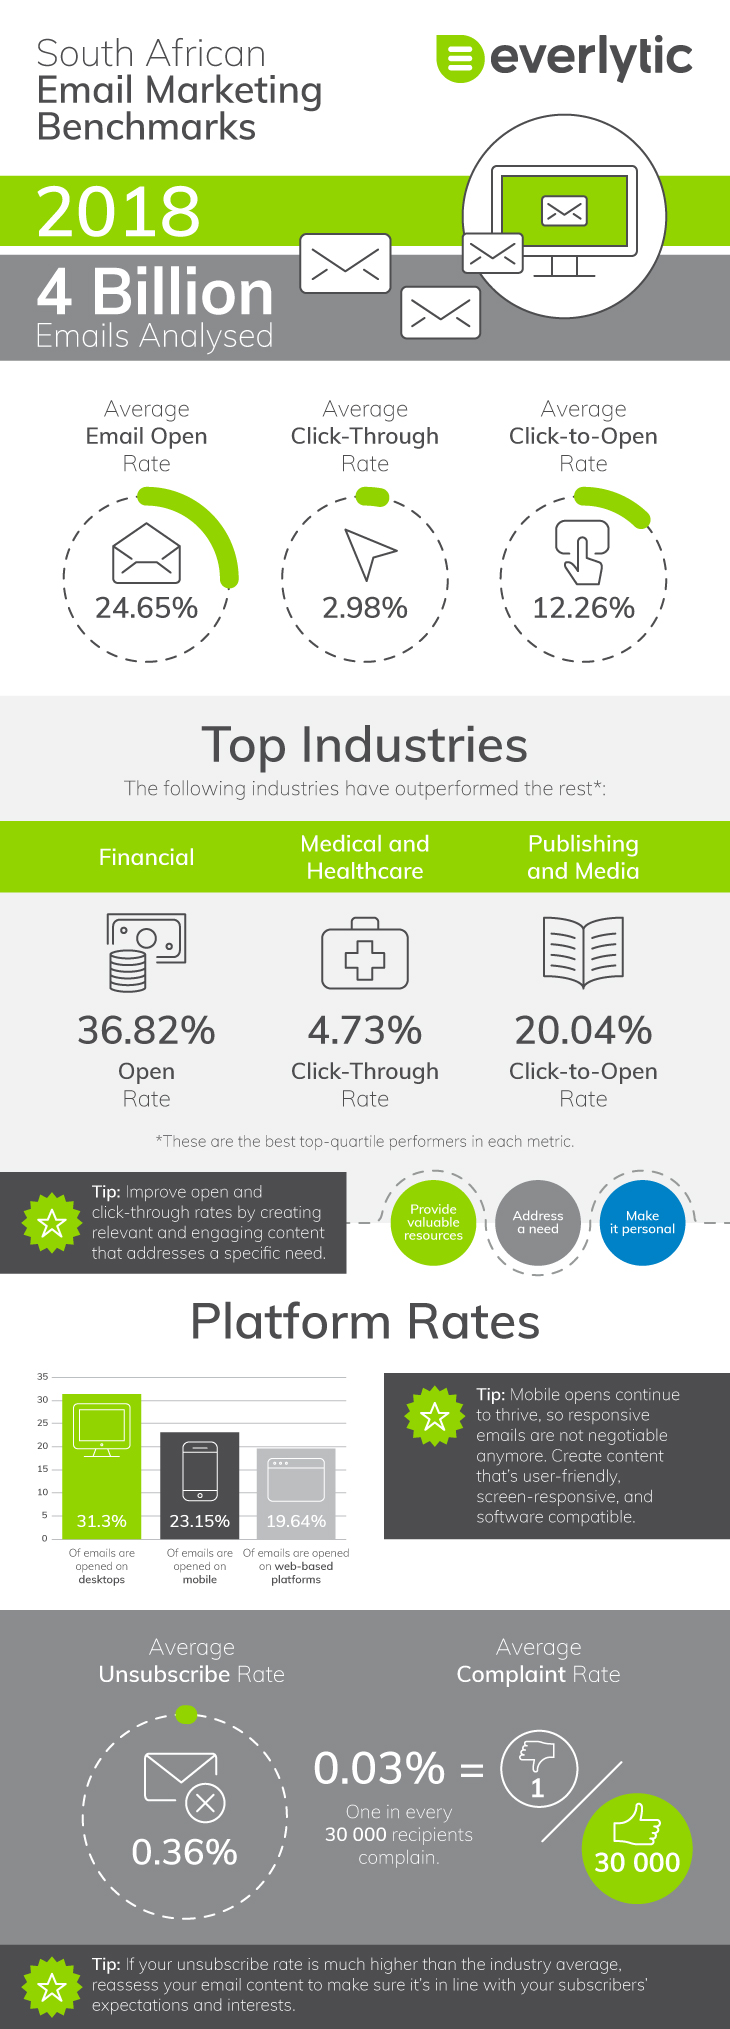 Everlytic   Benchmarks 2018   Infographic   Email Marketing   Statistics   Click rate   Click-through rate   Click-to-Open rate   Unsubscribe rate   South Africa